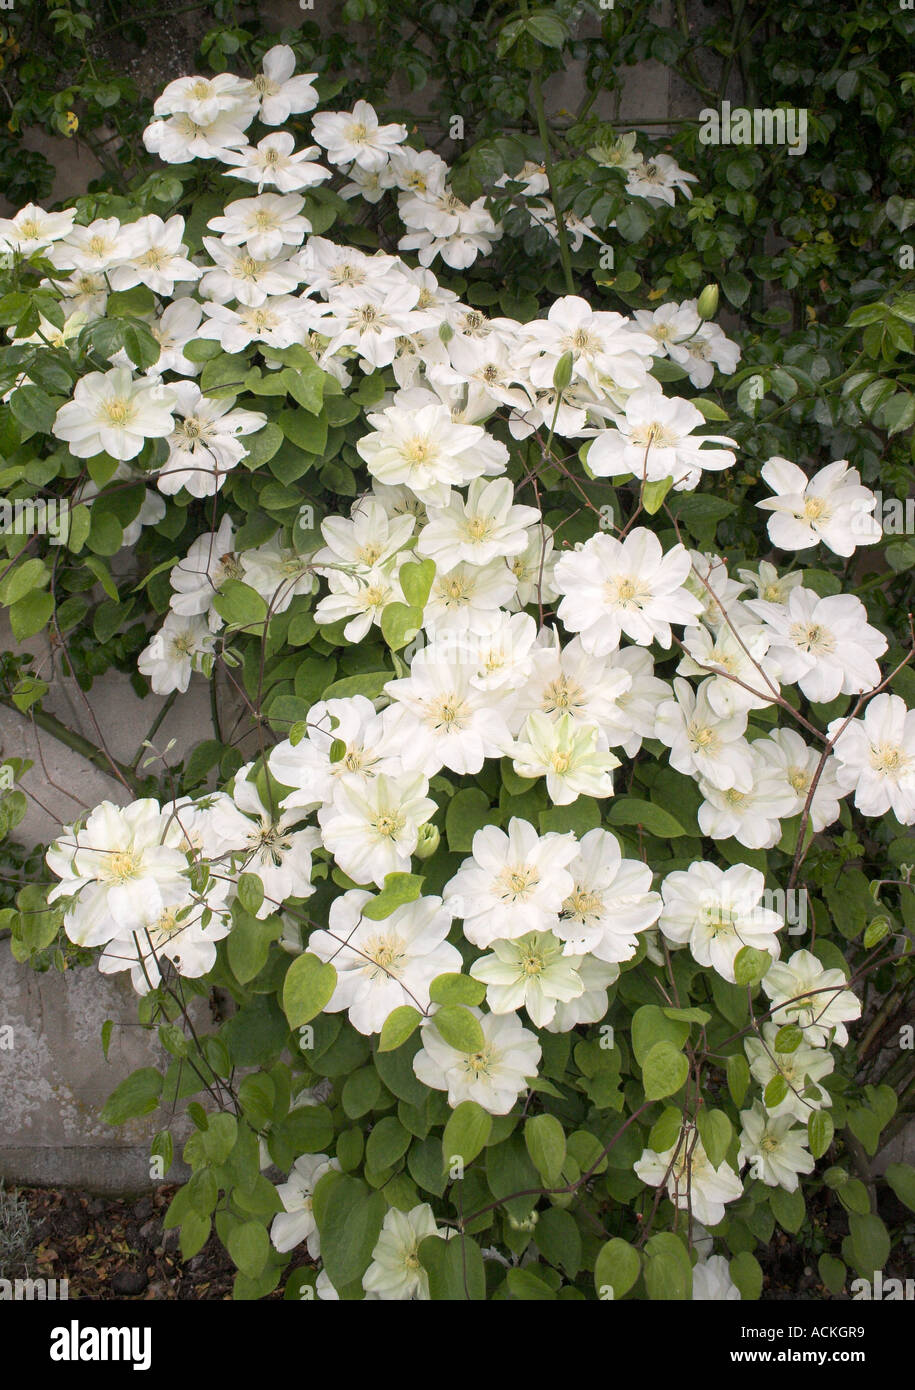 Clematis White With Cream Stems Flower Leaves Petals Creeper Hybrid